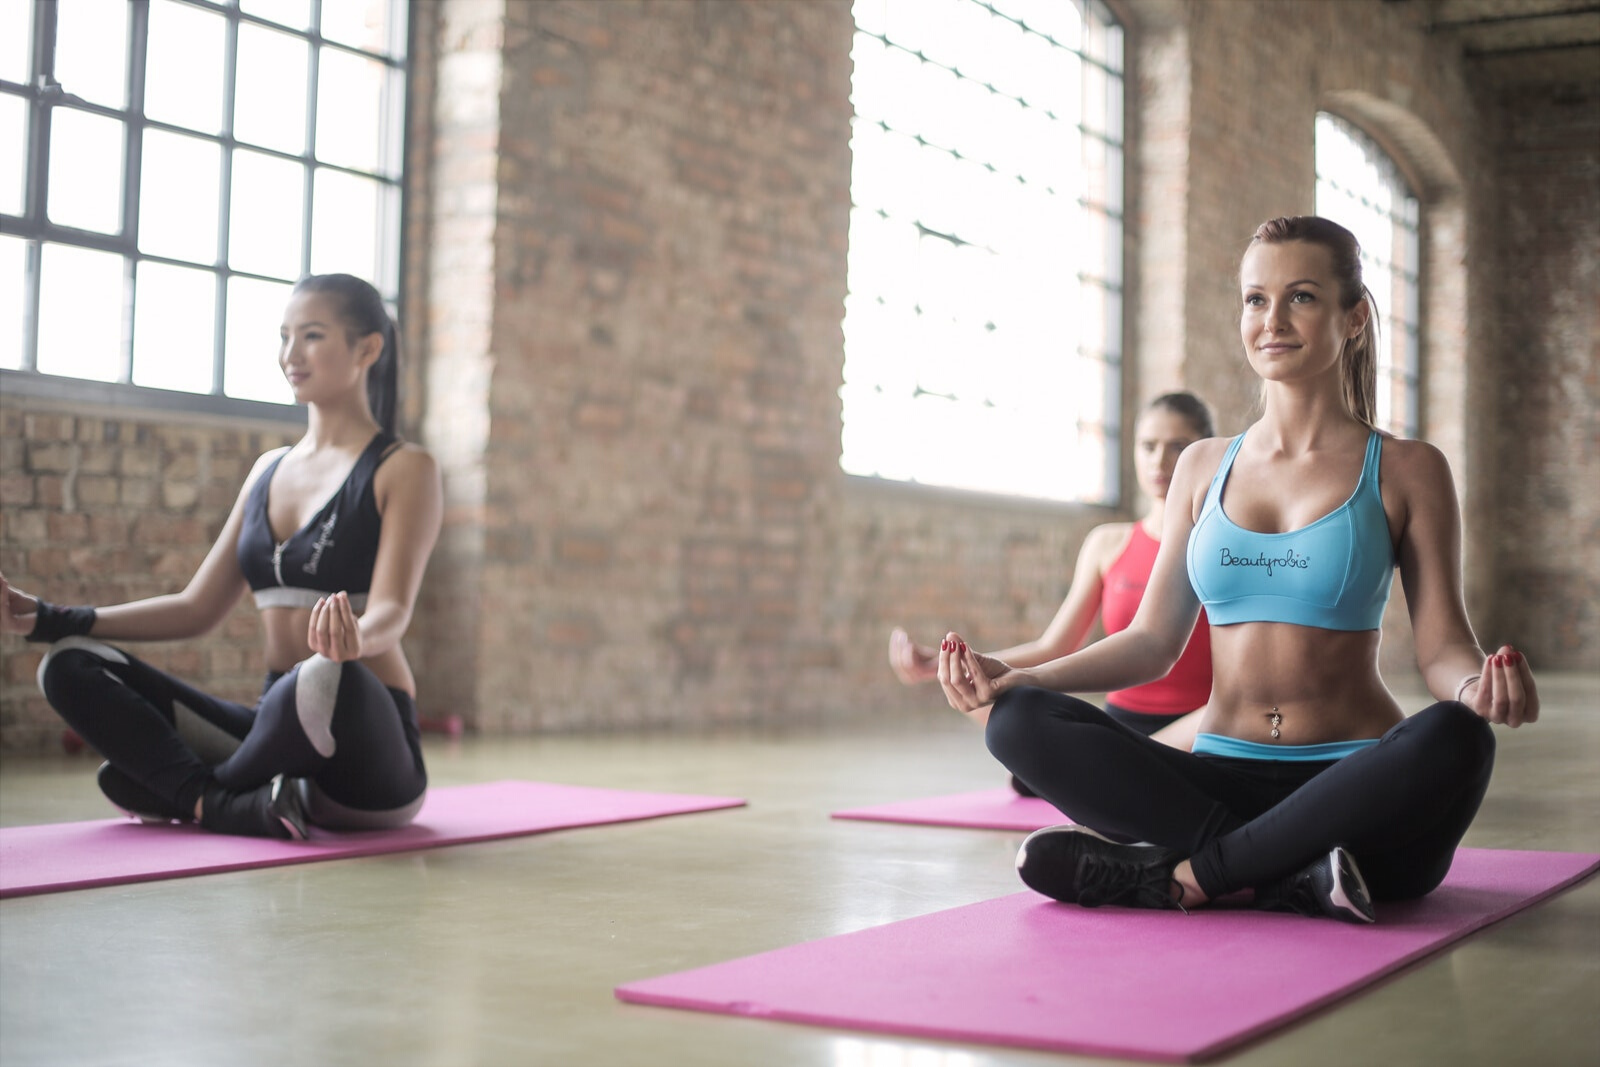 Women Doing Yoga | Your First Yoga Class? Here Are 9 Tips To Help You Be Ready